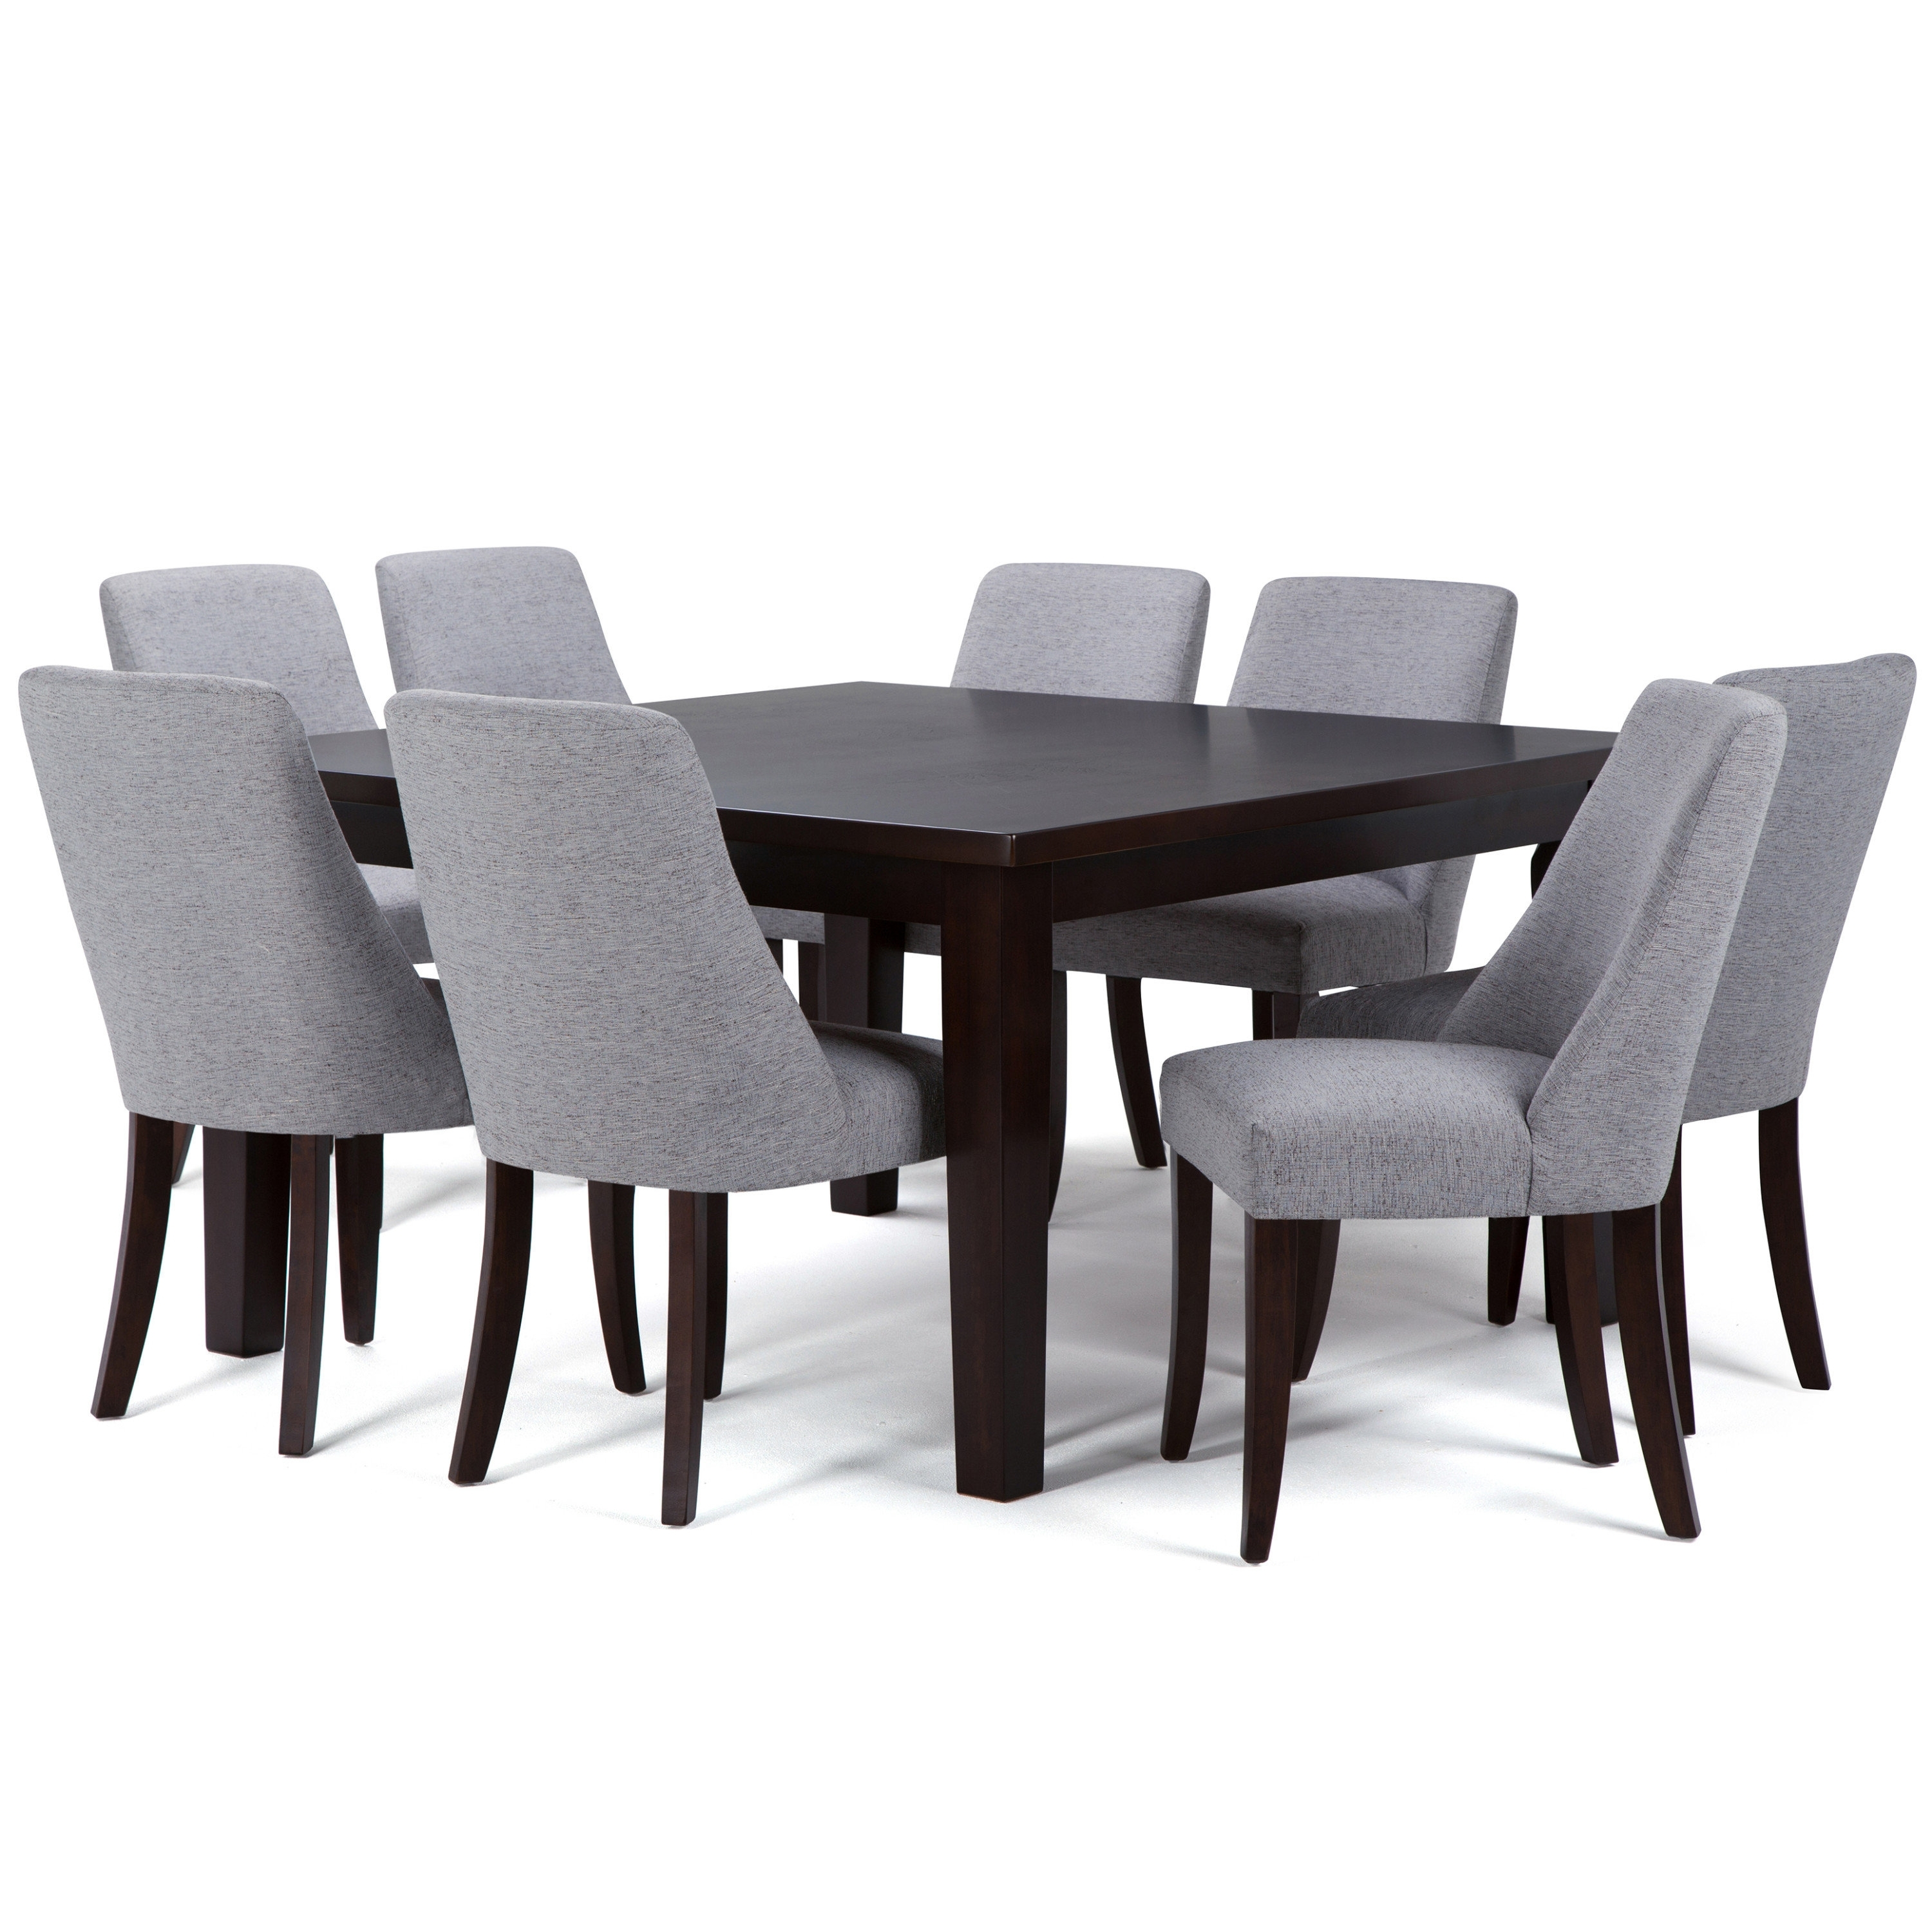 Simpli Home Walden 9 Piece Solid Wood Dining Set | Wayfair With Most Up To Date Walden Extension Dining Tables (Image 13 of 20)